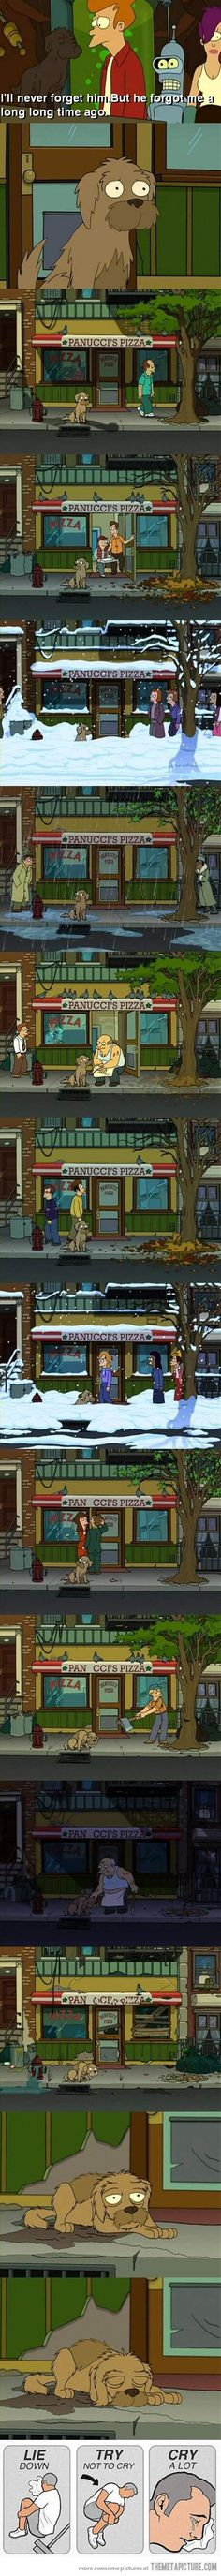 """Saddest moment in Futurama…"" I'd be lying if I said I didn't cry when I watched that..."